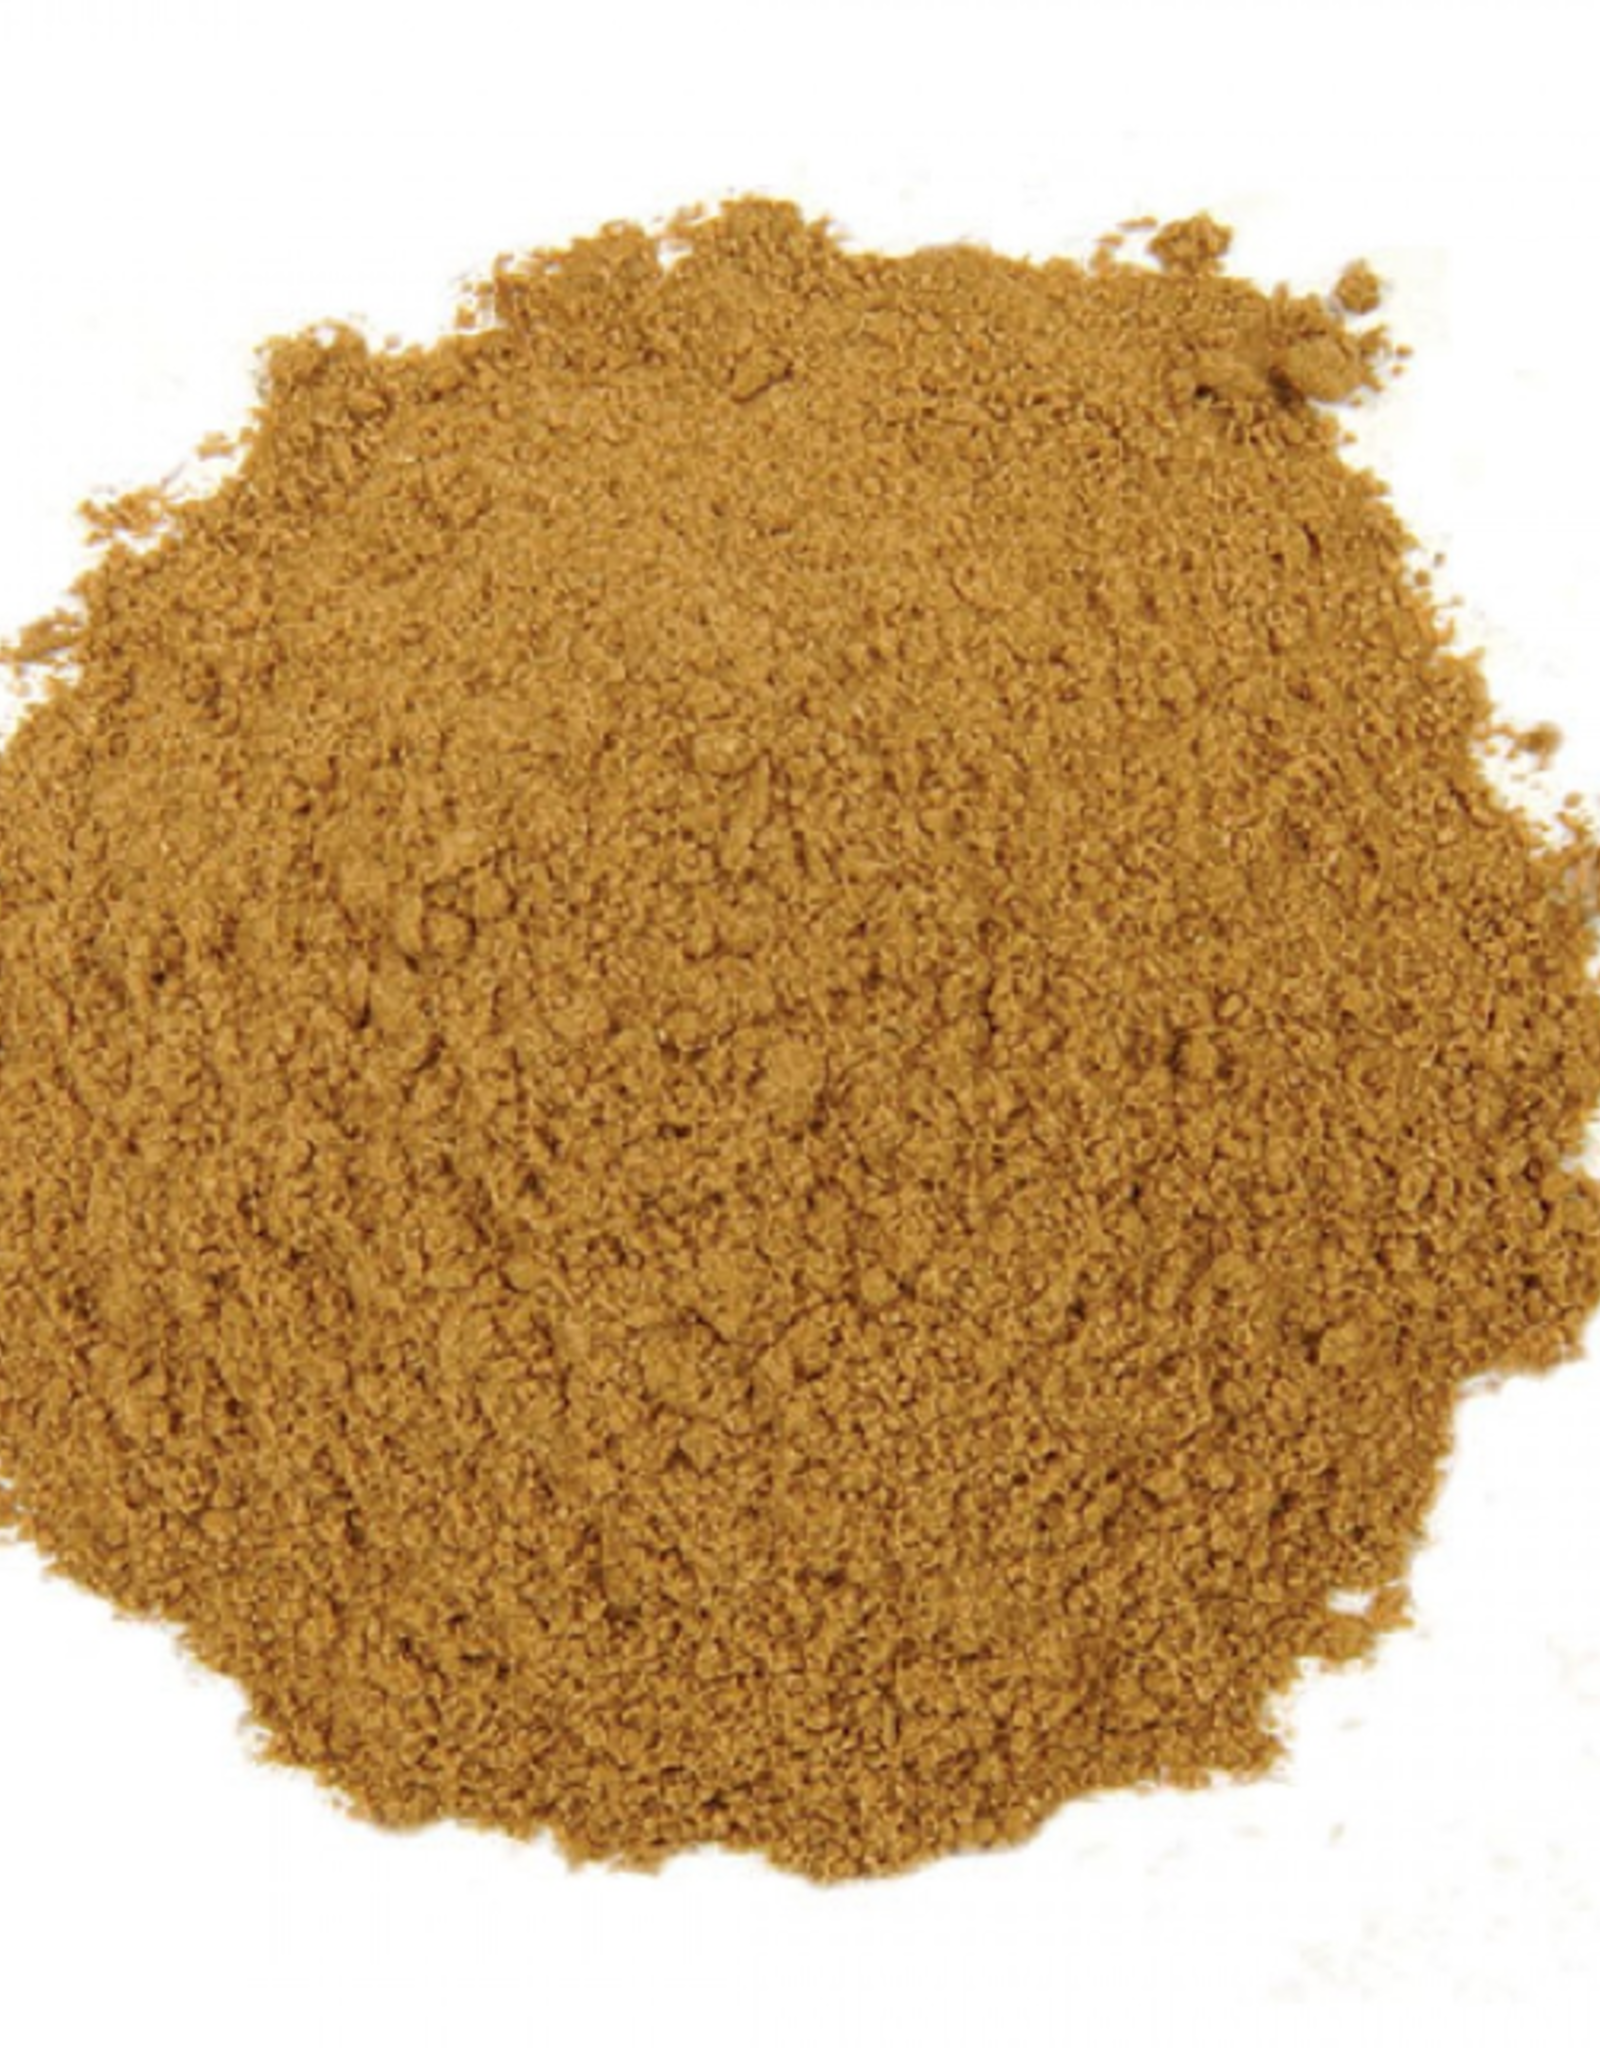 Cinnamon Ceylon Powder - Organic